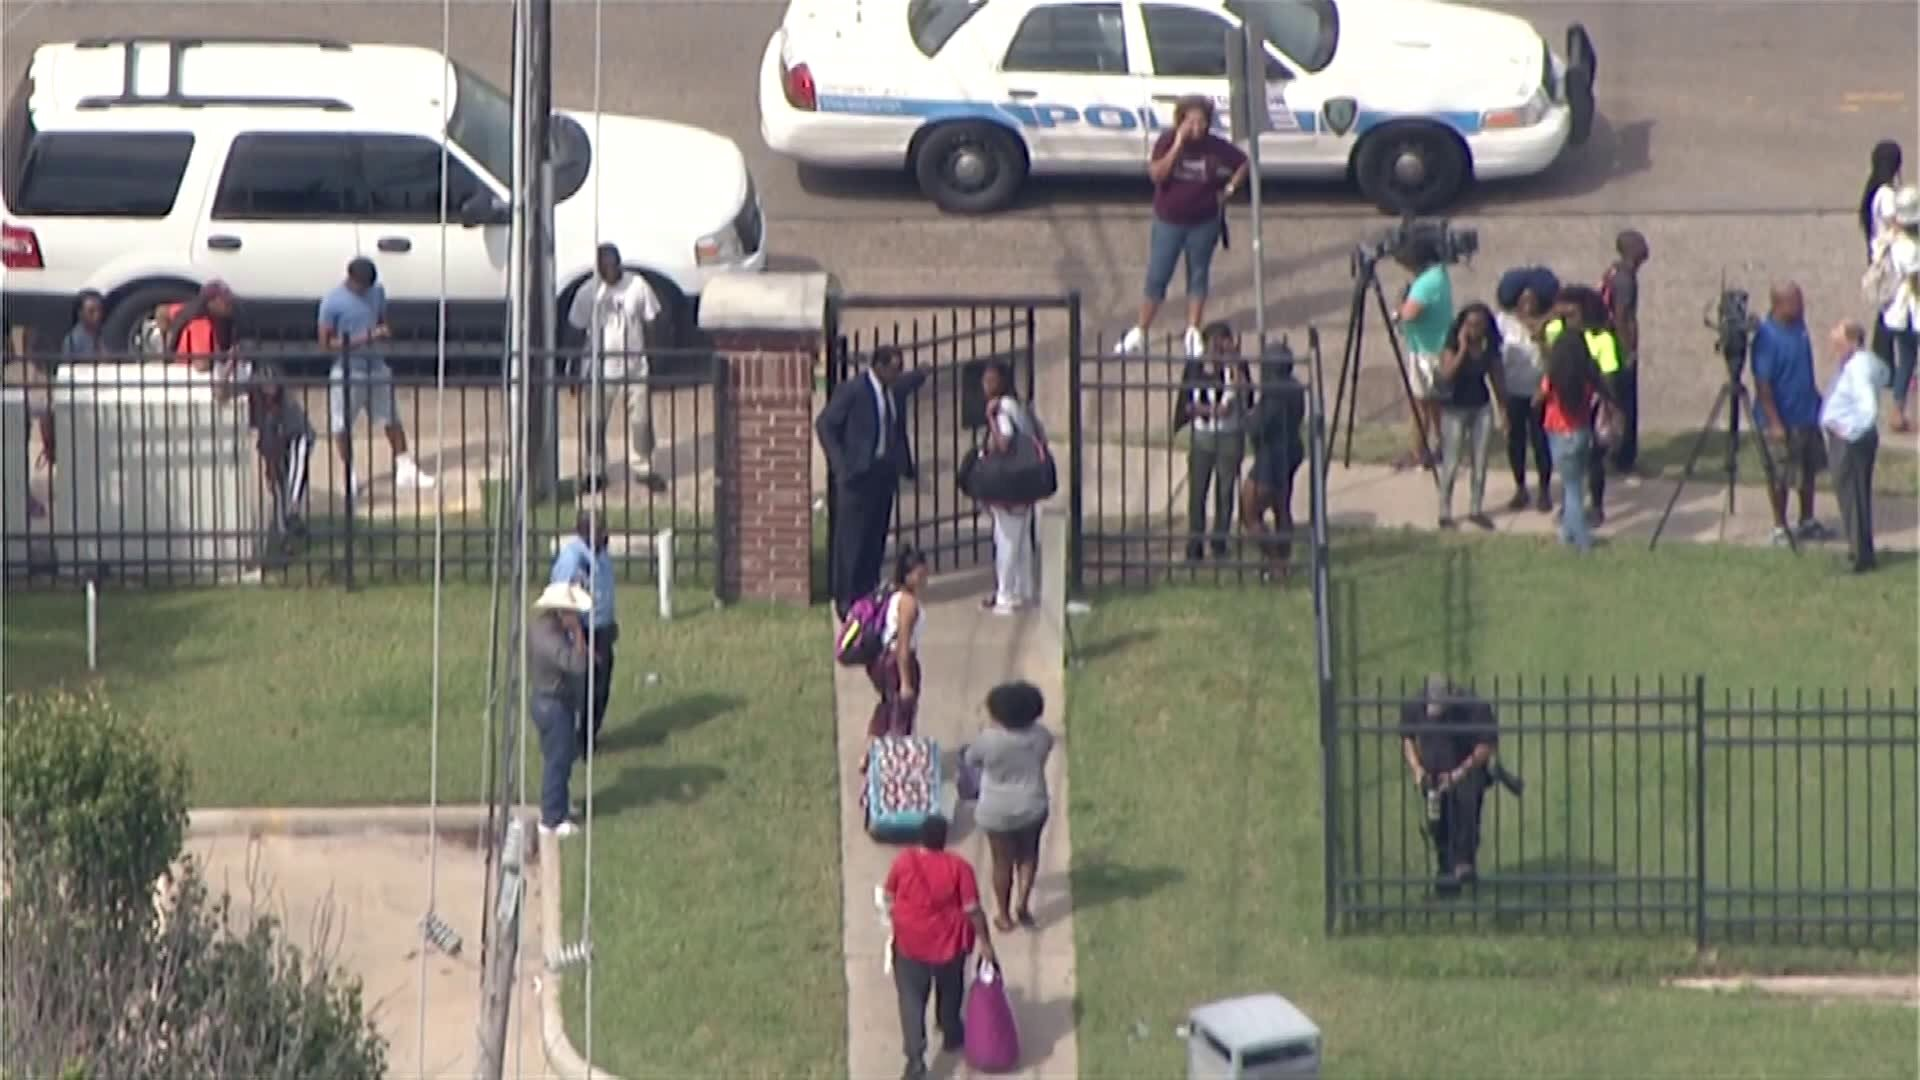 Photos: Texas Southern University shooting: 1 dead, 1 wounded after gunfire erupts at campusapartment